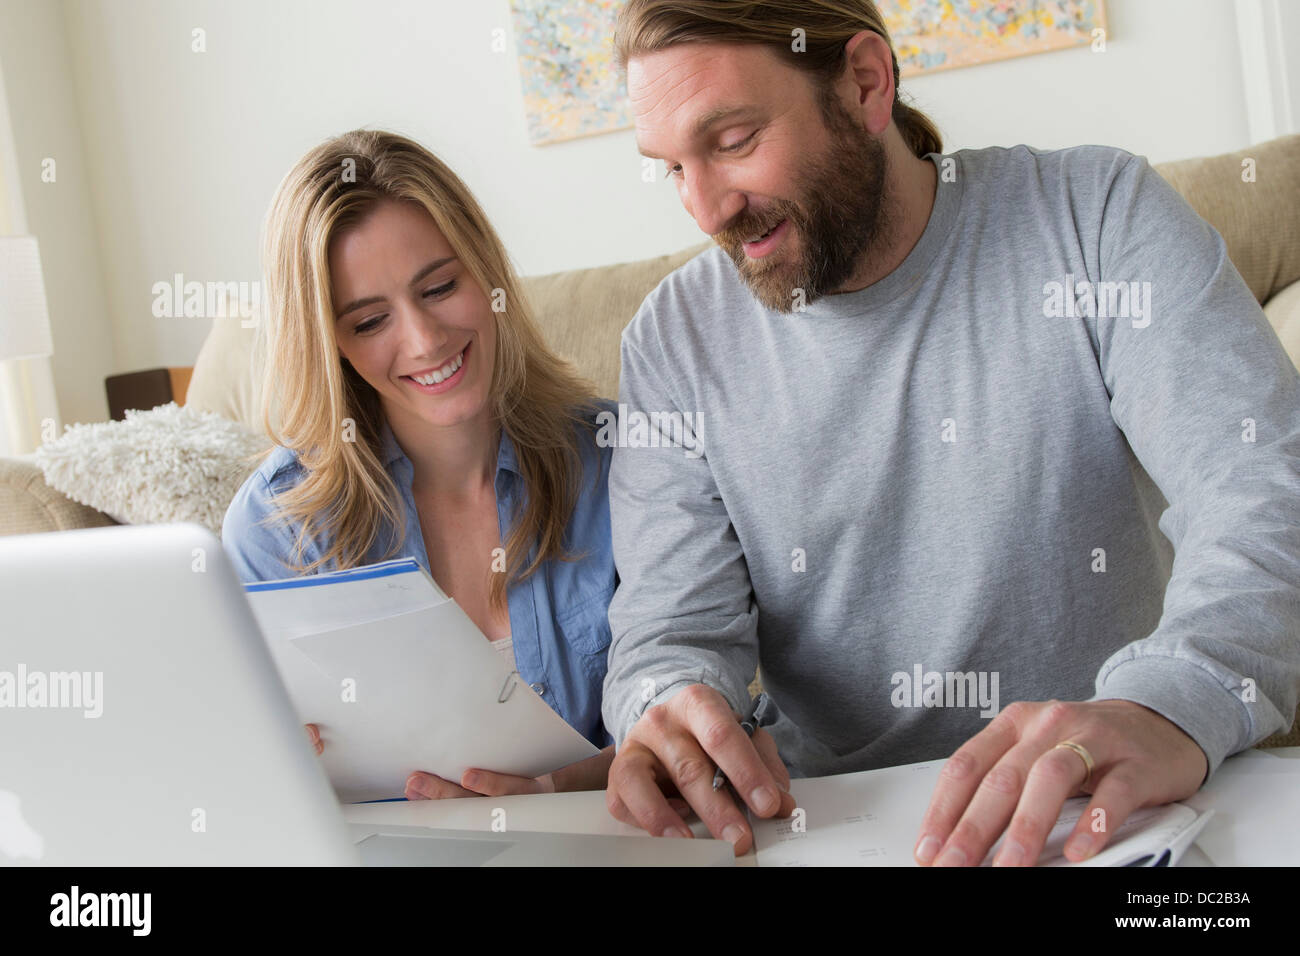 Husband and wife looking at letter - Stock Image